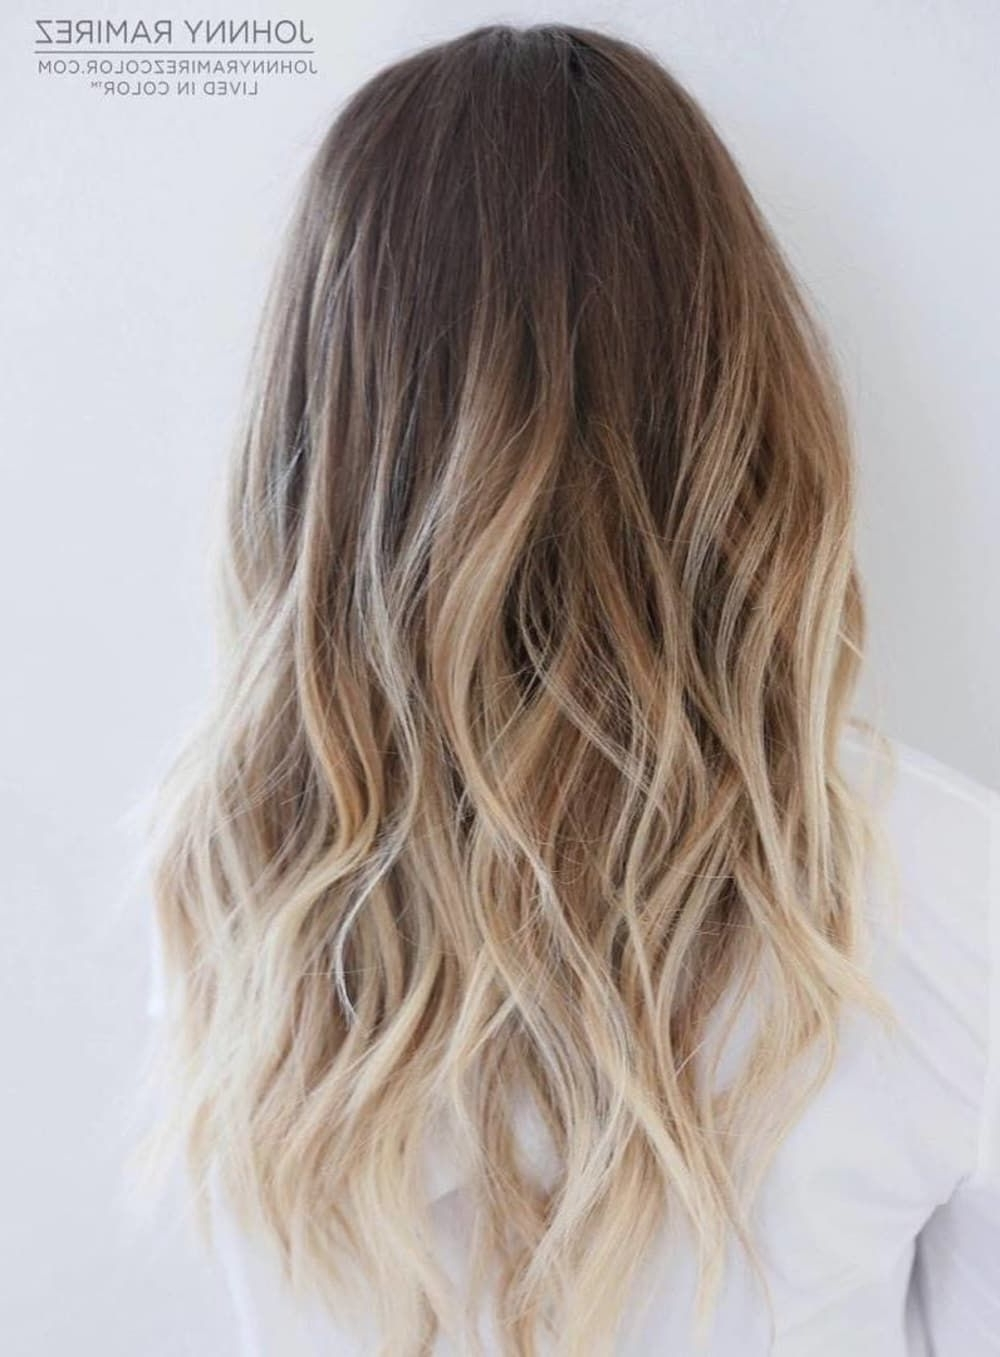 70 Flattering Balayage Hair Color Ideas For (View 3 of 20)